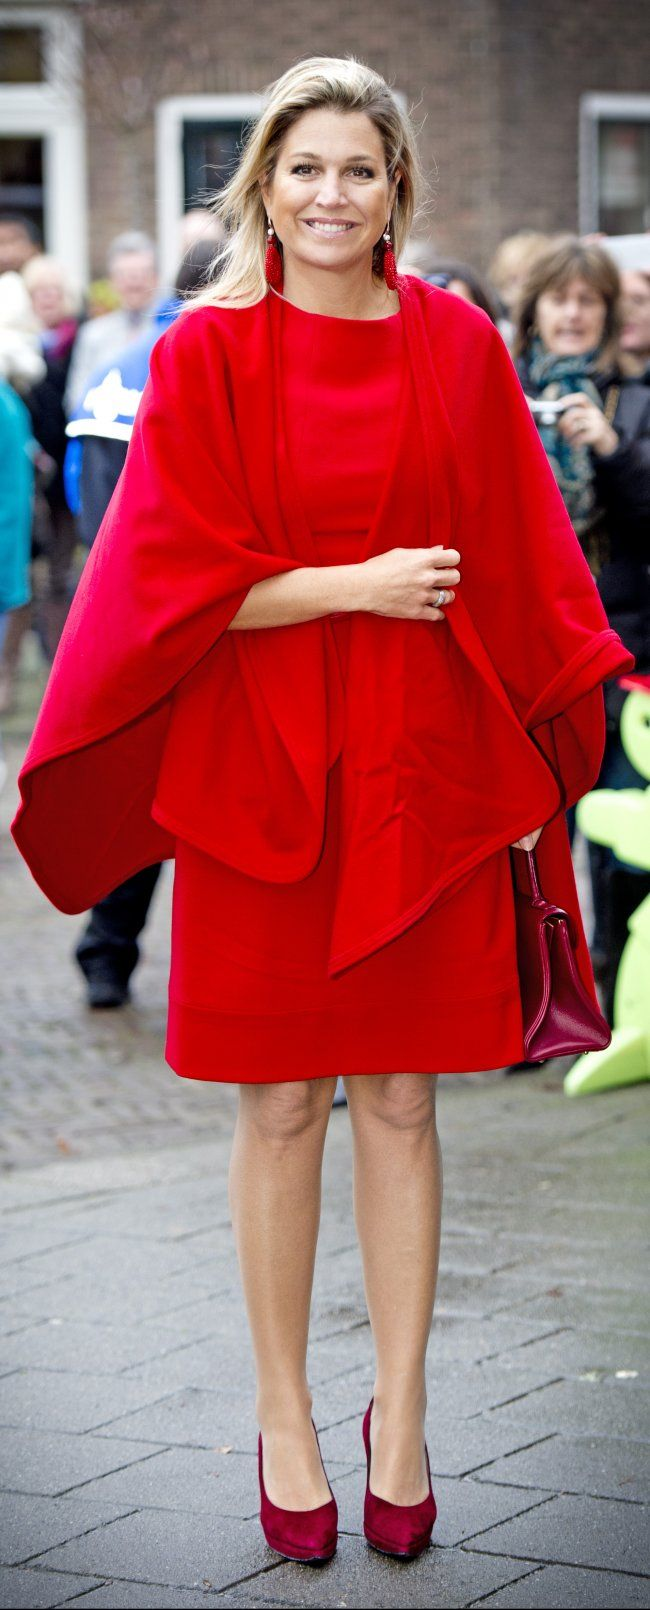 17 Best images about Queen Maxima of the Netherlands on ...